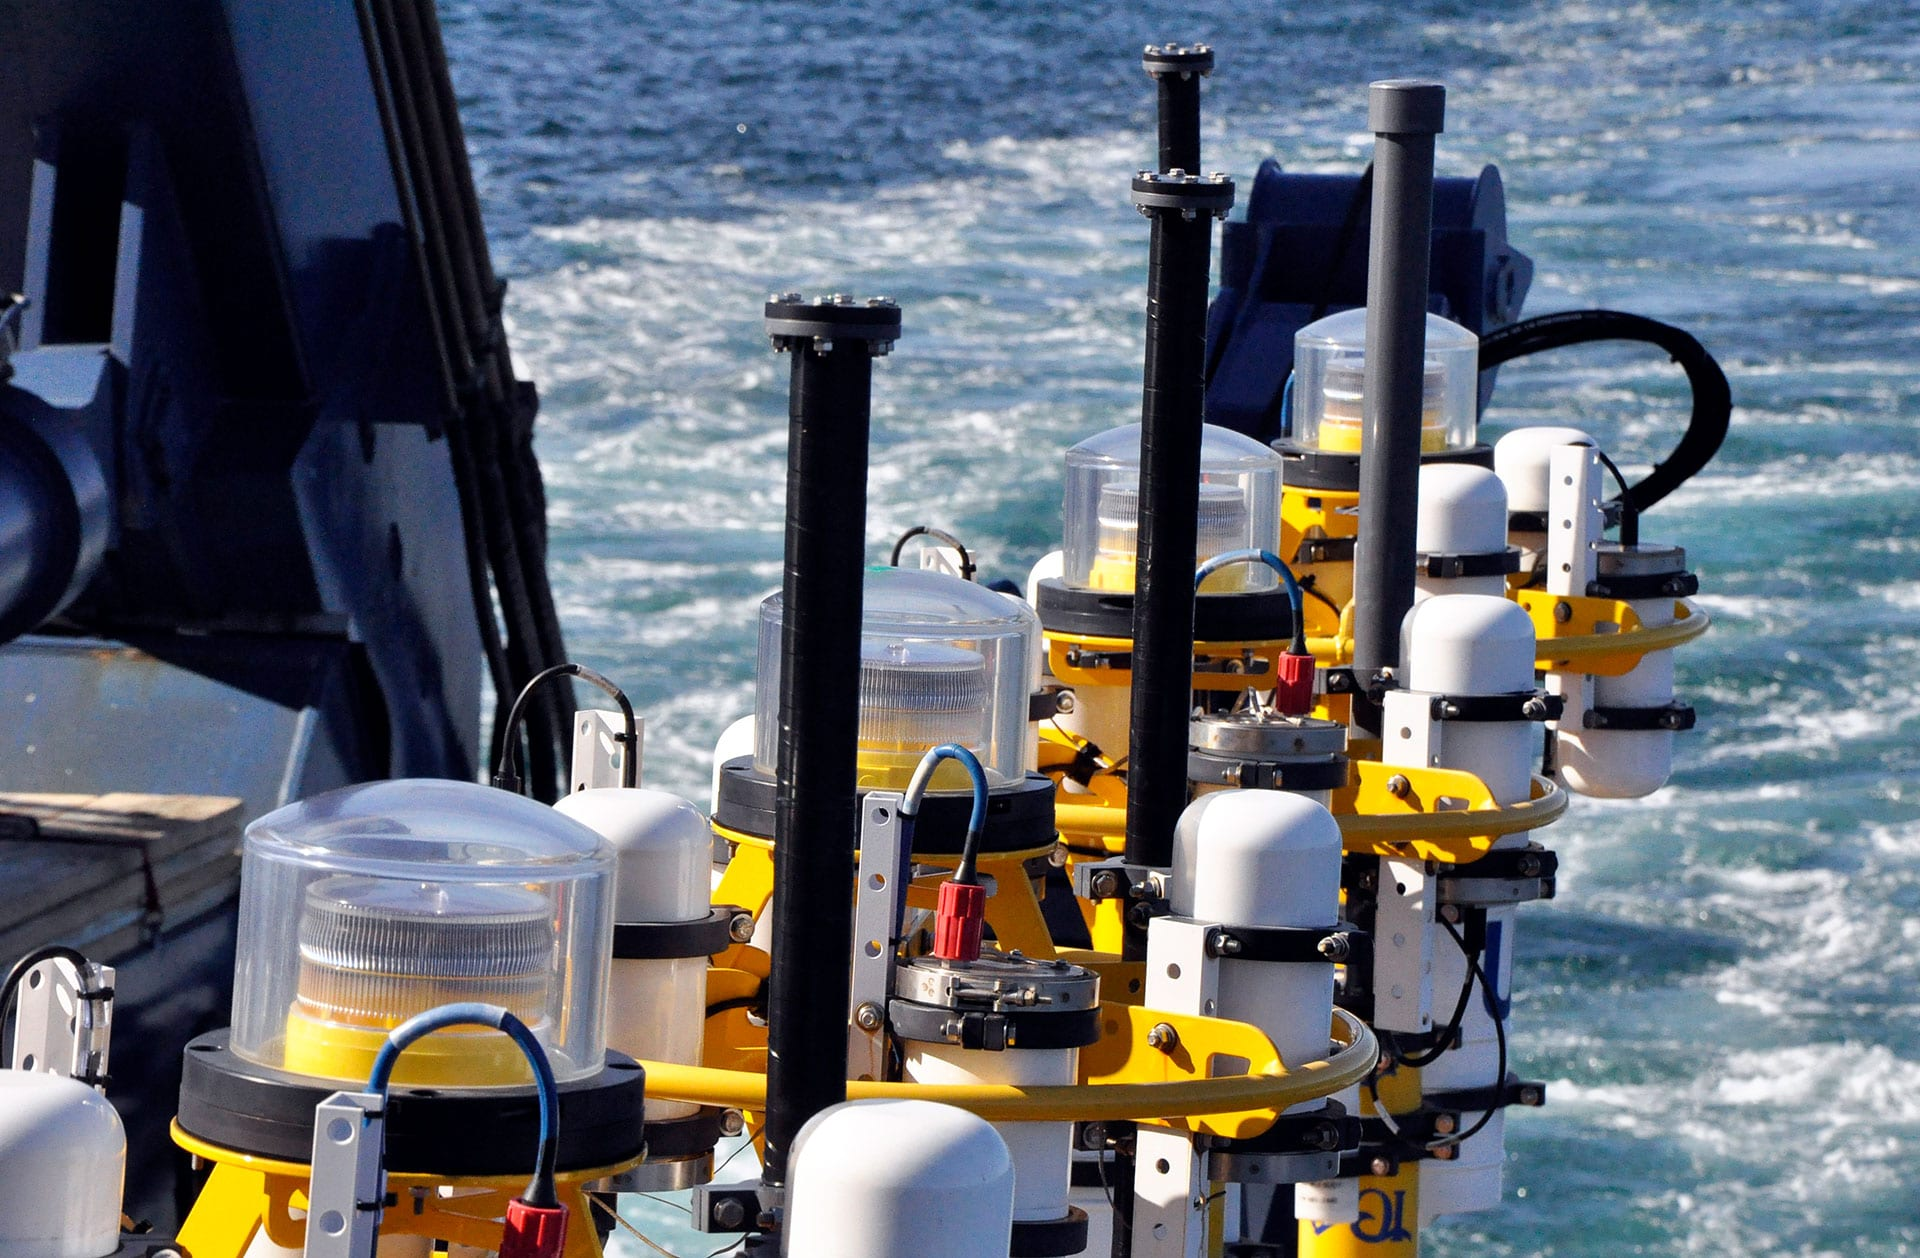 The Pioneer Array includes a variety of instruments that can measure ocean conditions during hurricanes. This includes Coastal Profiler Moorings, which are shown here on the R/V Atlantis prior to deployment. (Photo by John Lund, Woods Hole Oceanographic Institution).